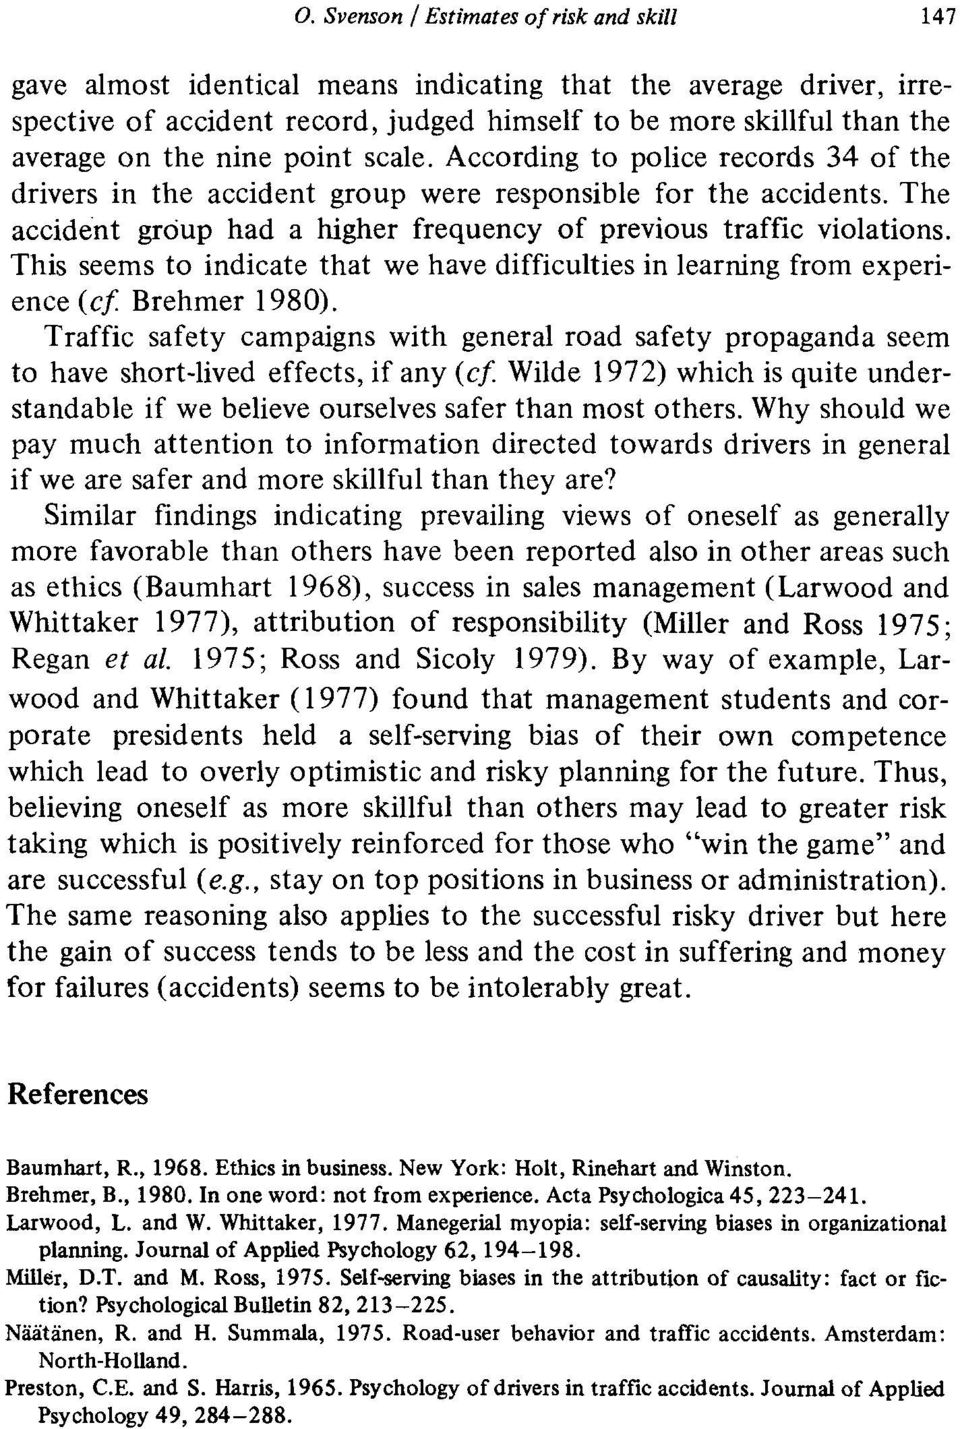 This seems to indicate that we have difficulties in learning from experience (cc Brehmer 1980).